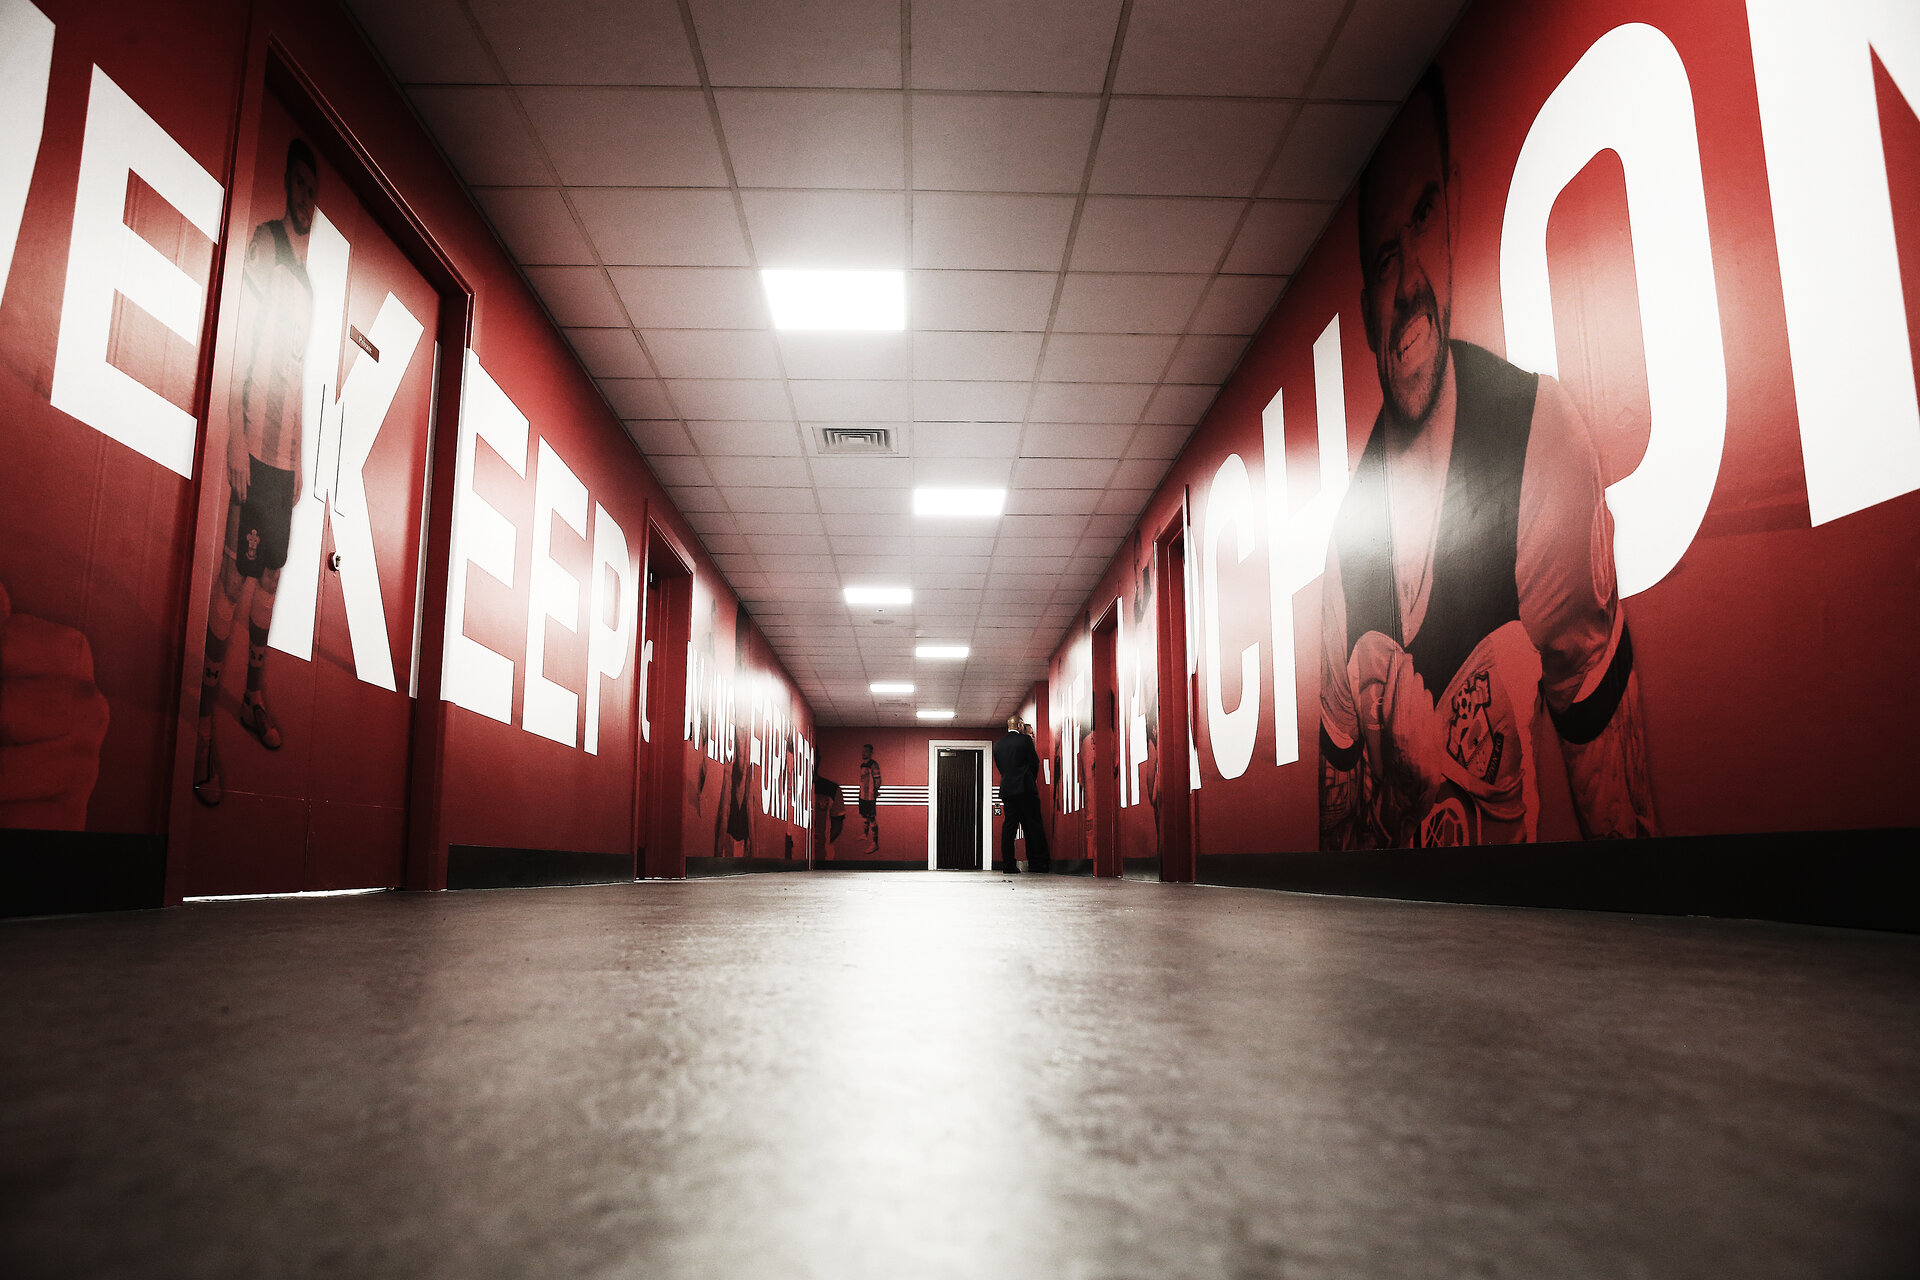 SOUTHAMPTON, ENGLAND - AUGUST 17: The Southampton FC tunnel during the Premier League match between Southampton FC and Liverpool FC at St Mary's Stadium on August 17, 2019 in Southampton, United Kingdom. (Photo by Matt Watson/Southampton FC via Getty Images)